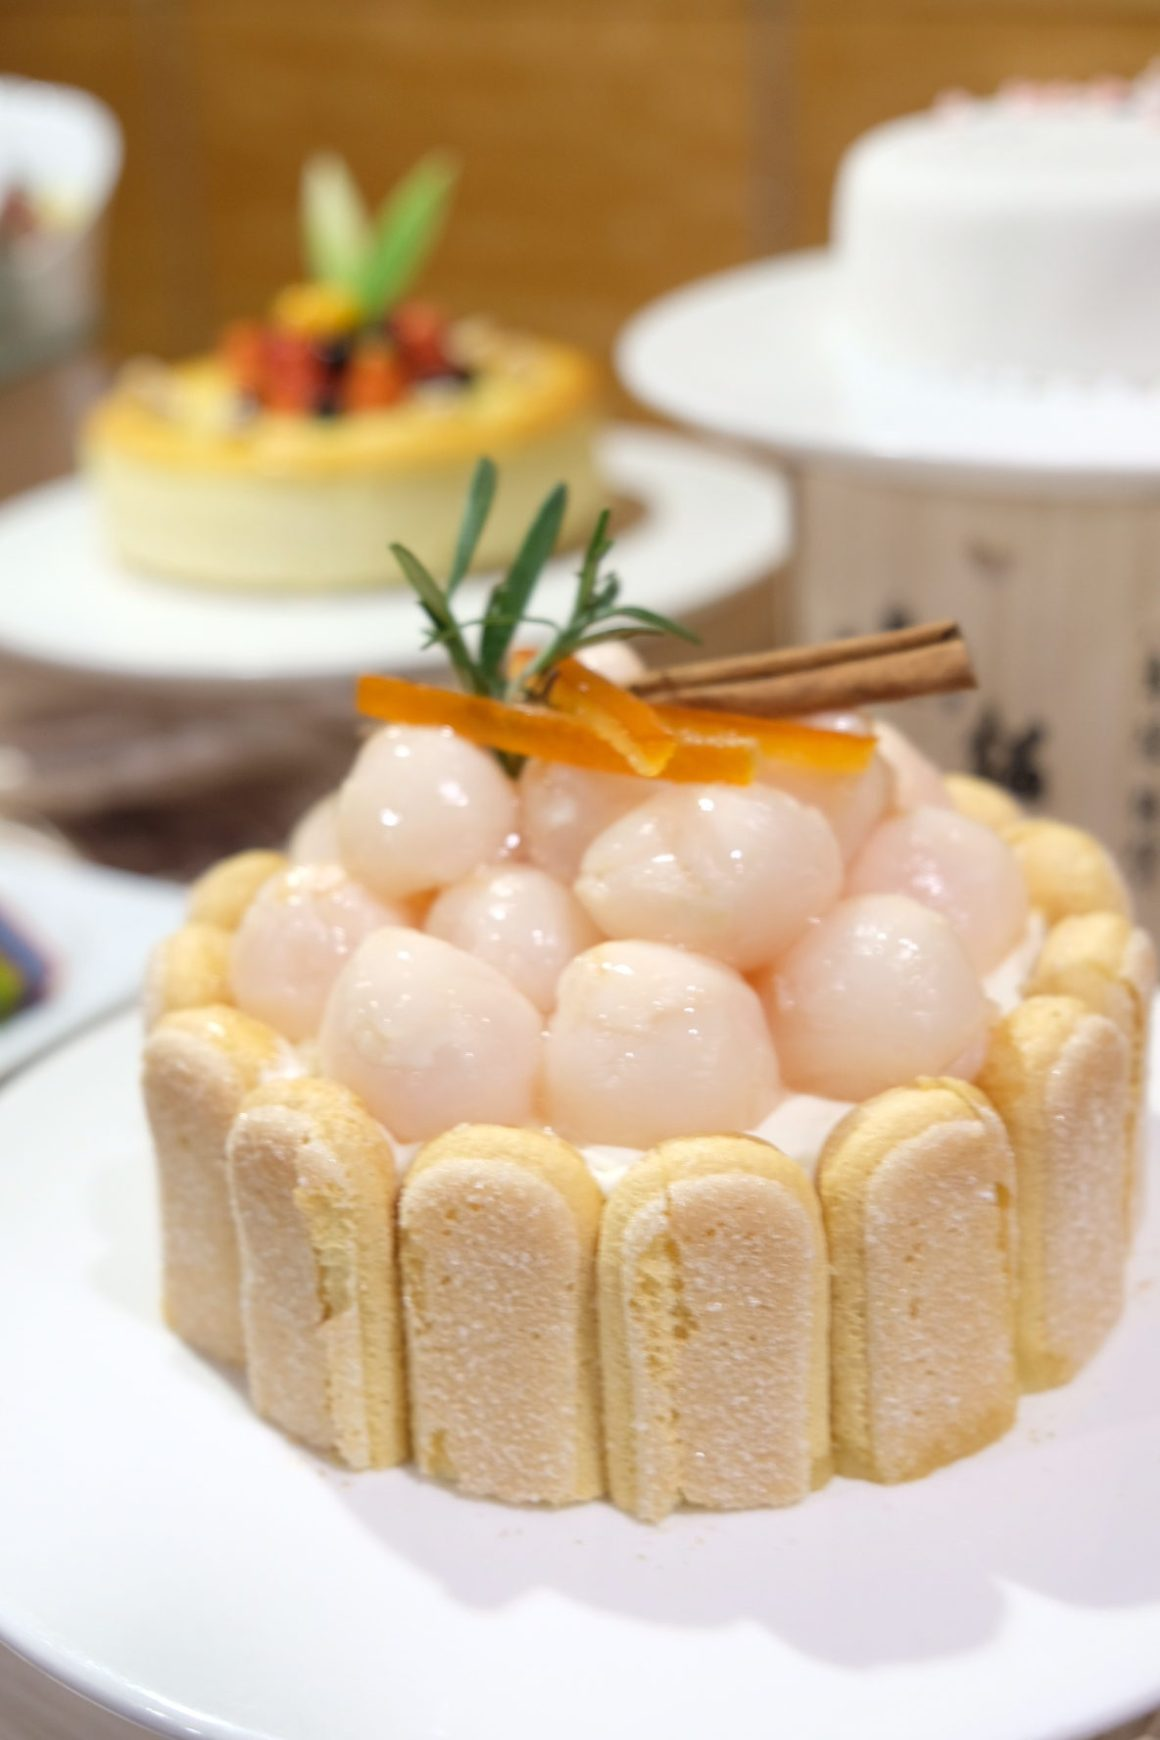 Best restaurants For Your Chinese New Year 2019 Reunion Dinner In Singapore - Amara Singapore, Lychee Cake